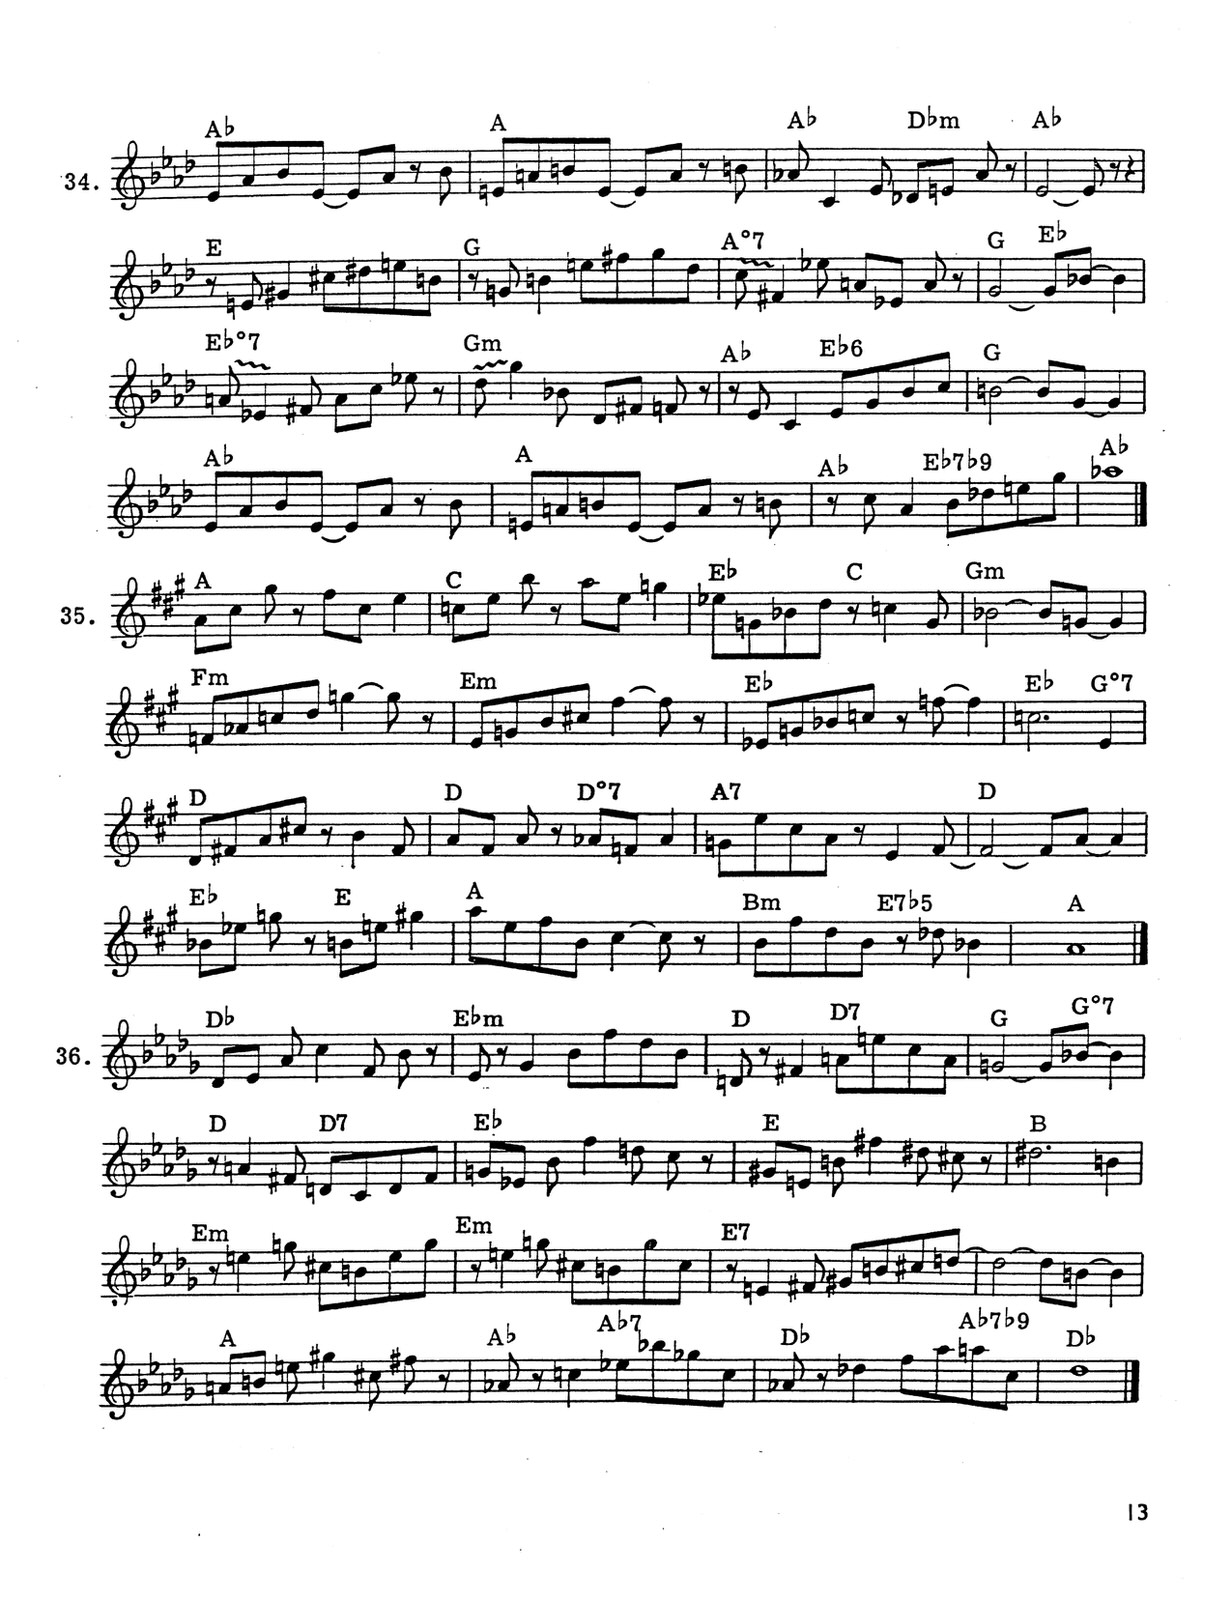 Allard, Advanced Rhythms 3